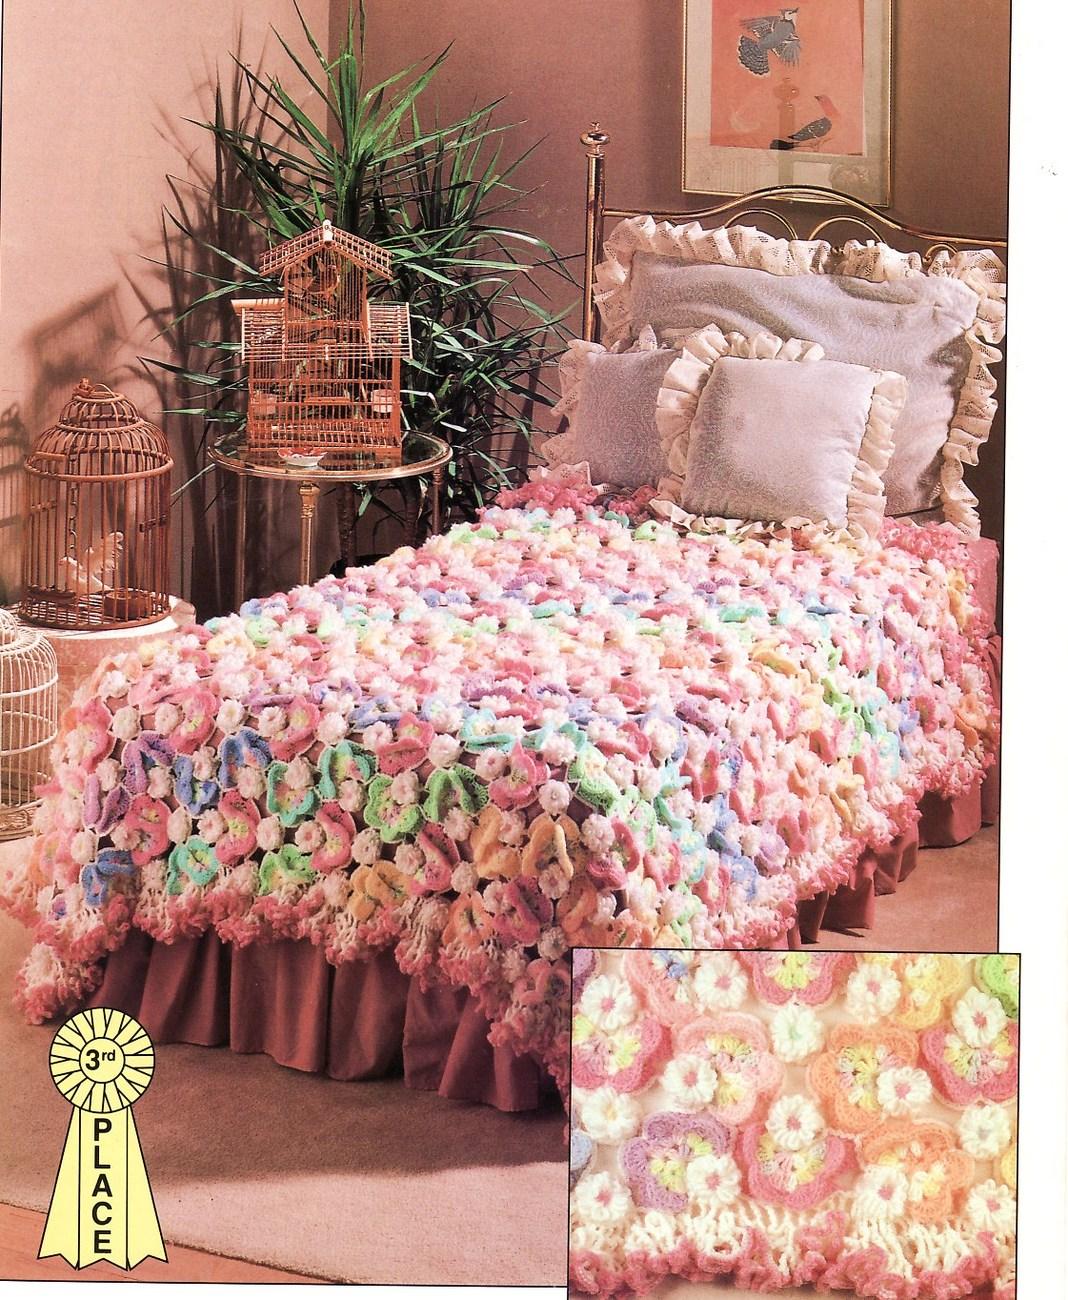 Crochet Bedspread : Rainbow Of Butterflies Crochet Pattern Bedspread Blanket Throw Home ...